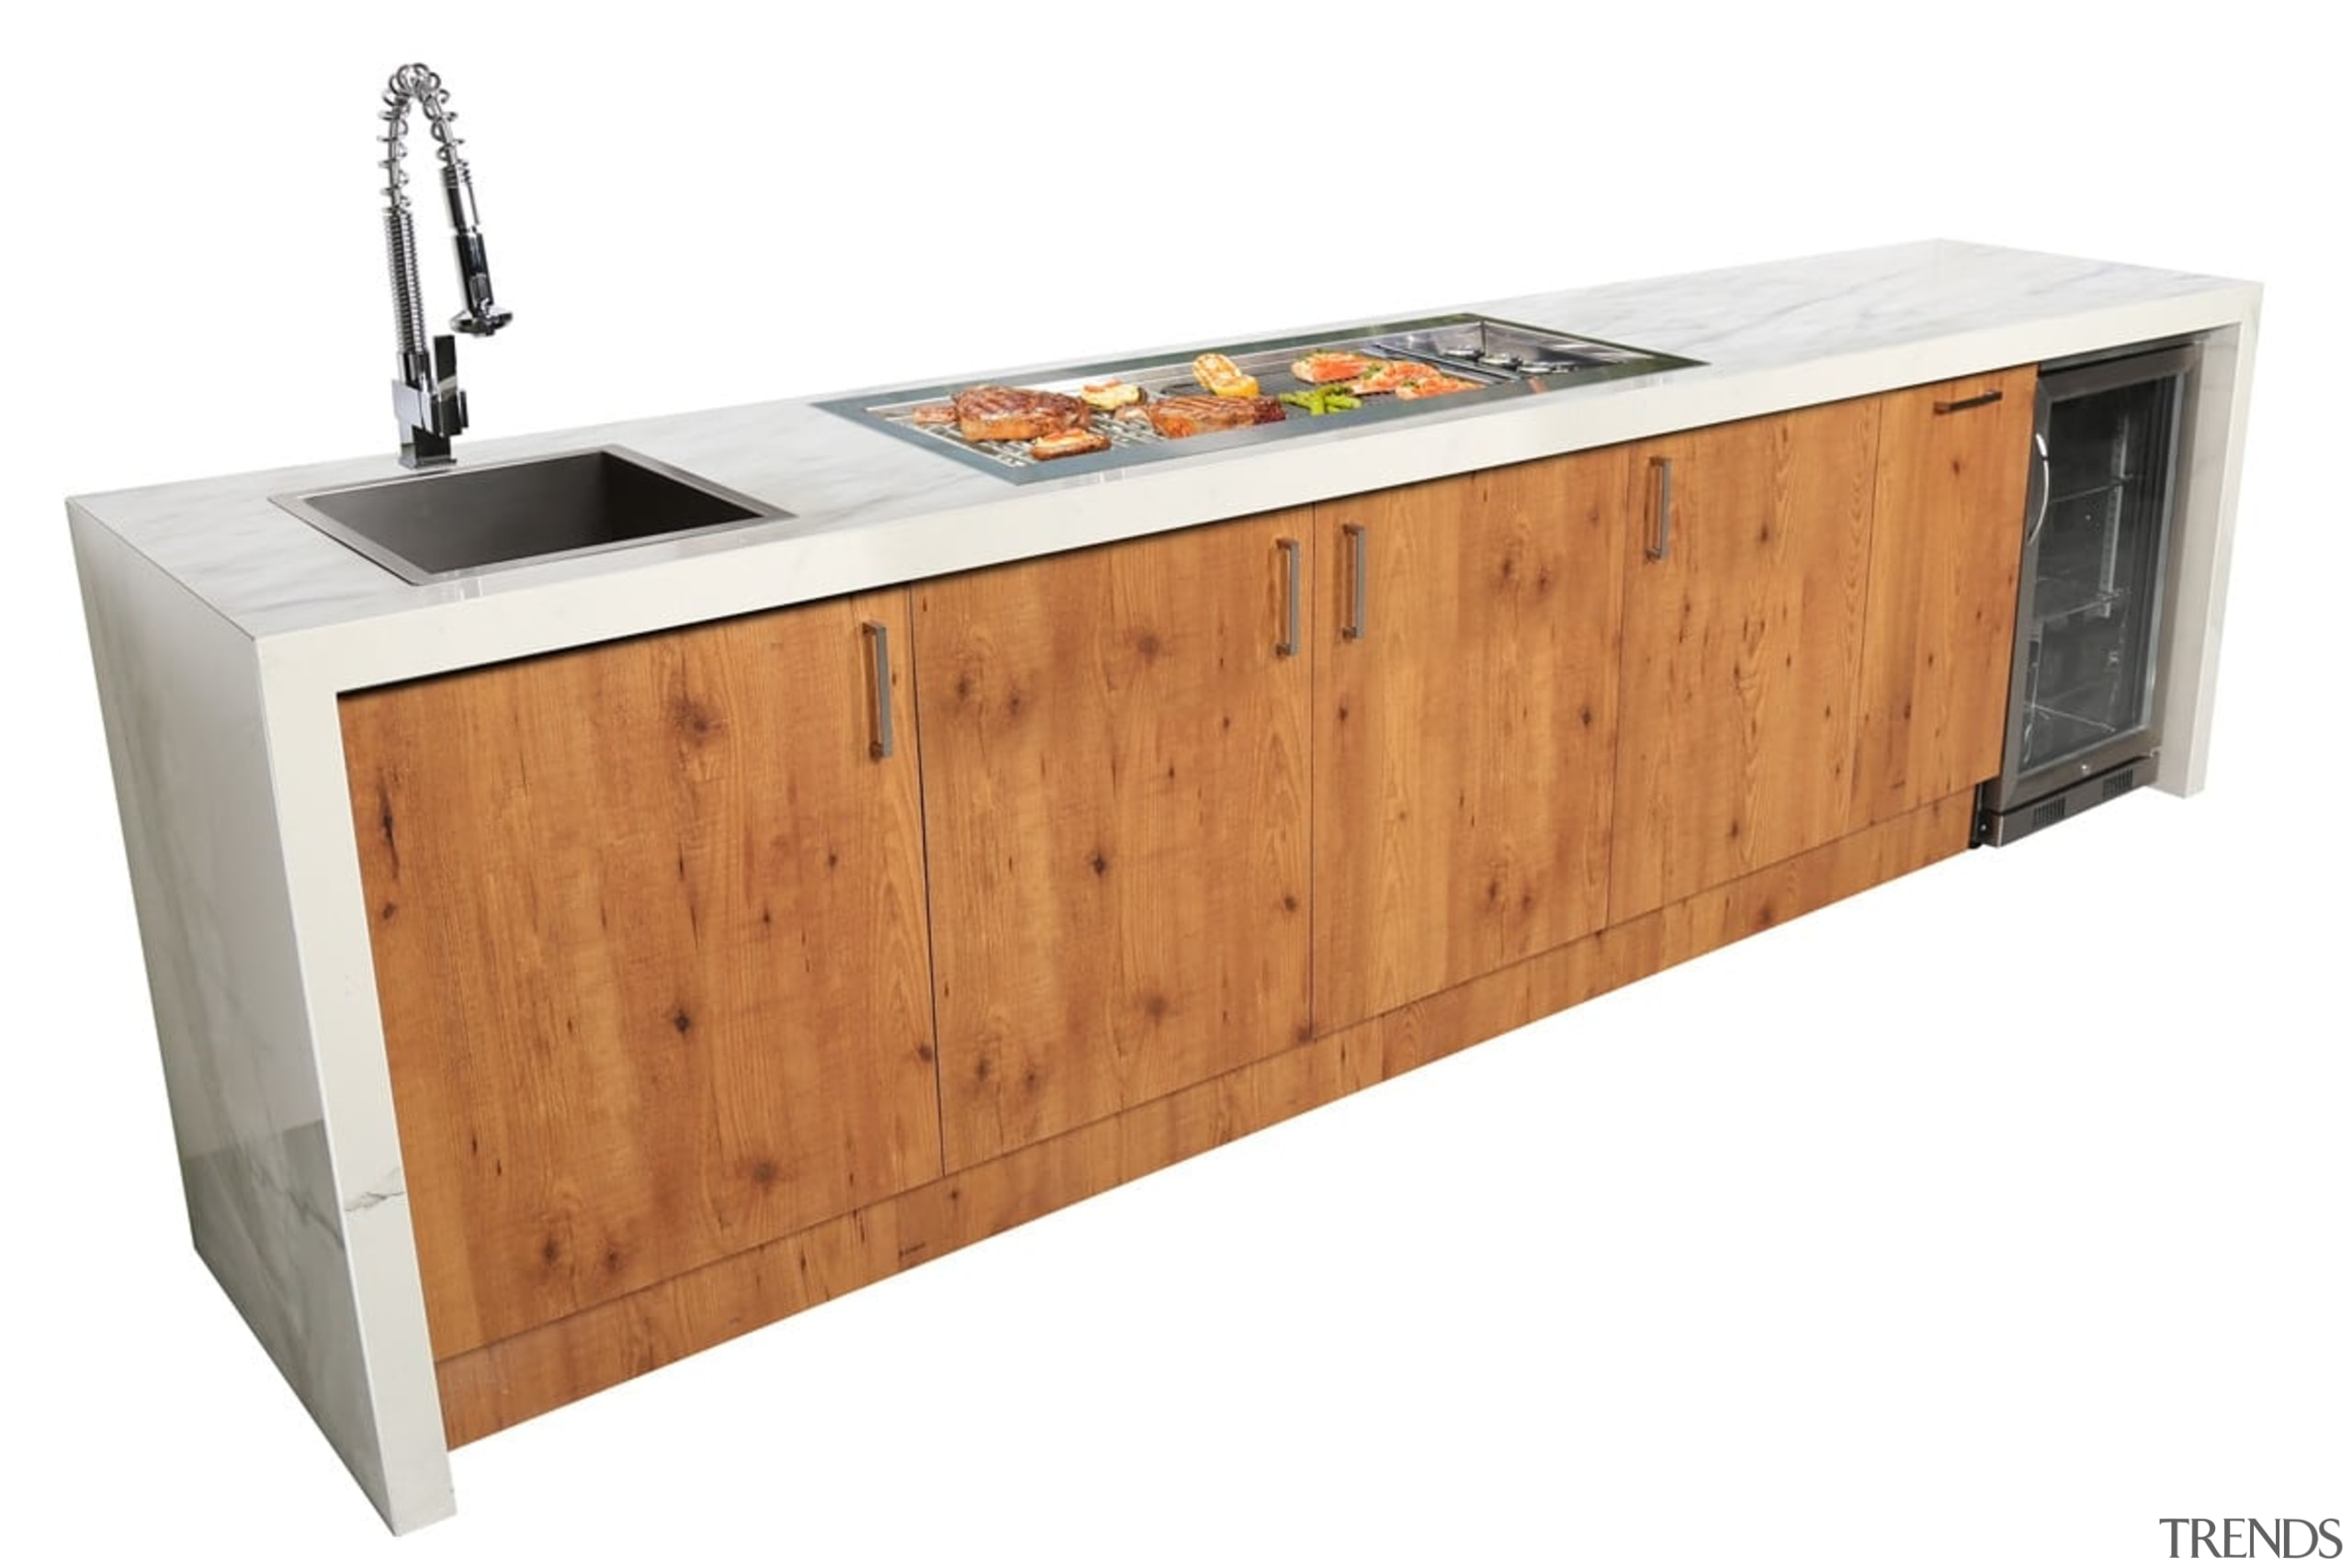 Gasmate Luxury Outdoor Kitchens - furniture | plumbing furniture, plumbing fixture, sideboard, sink, white